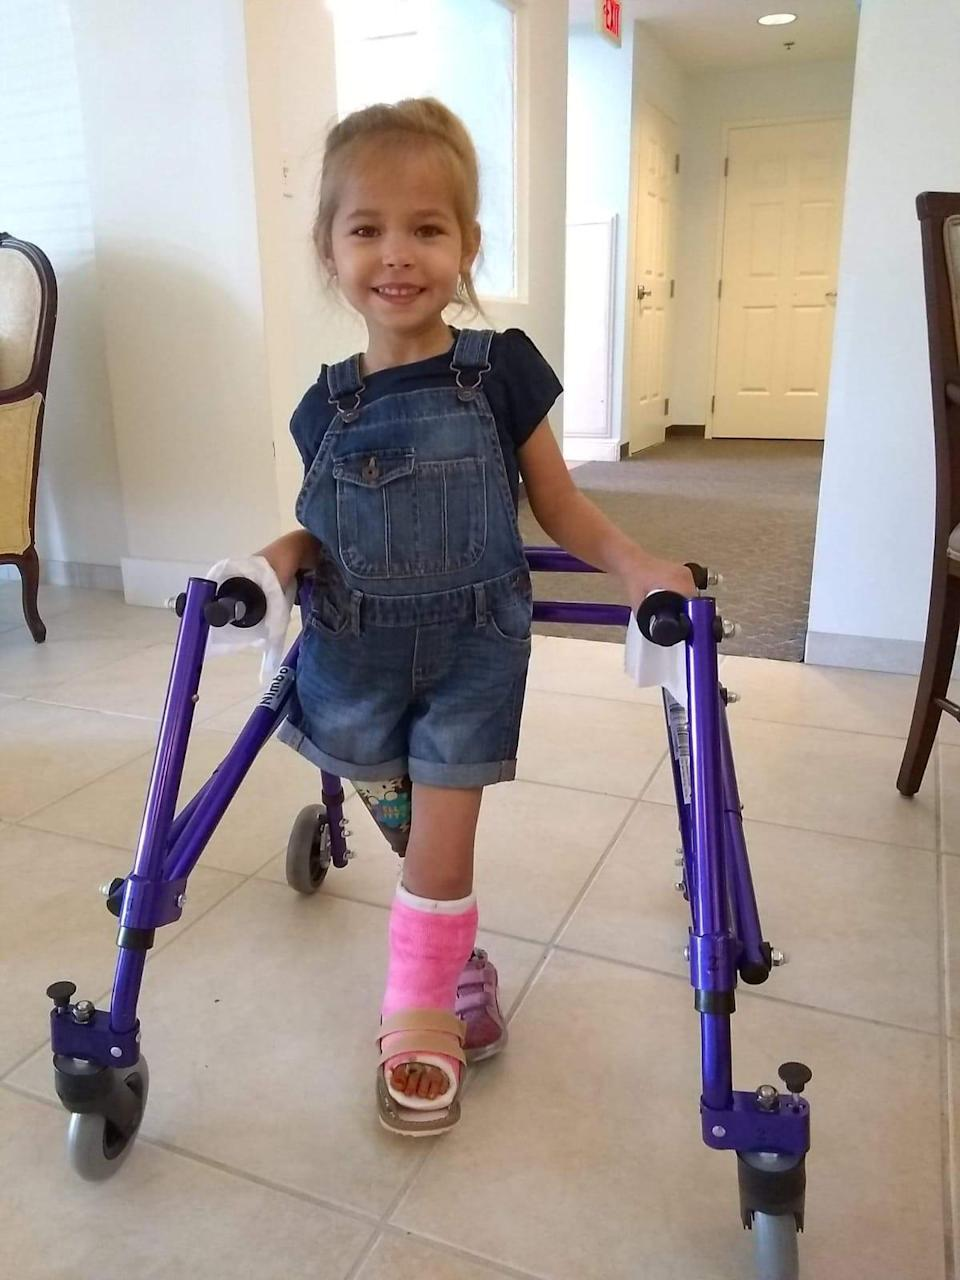 The toddler can now walk, run and play thanks to the life-changing surgery [Photo: SWNS]